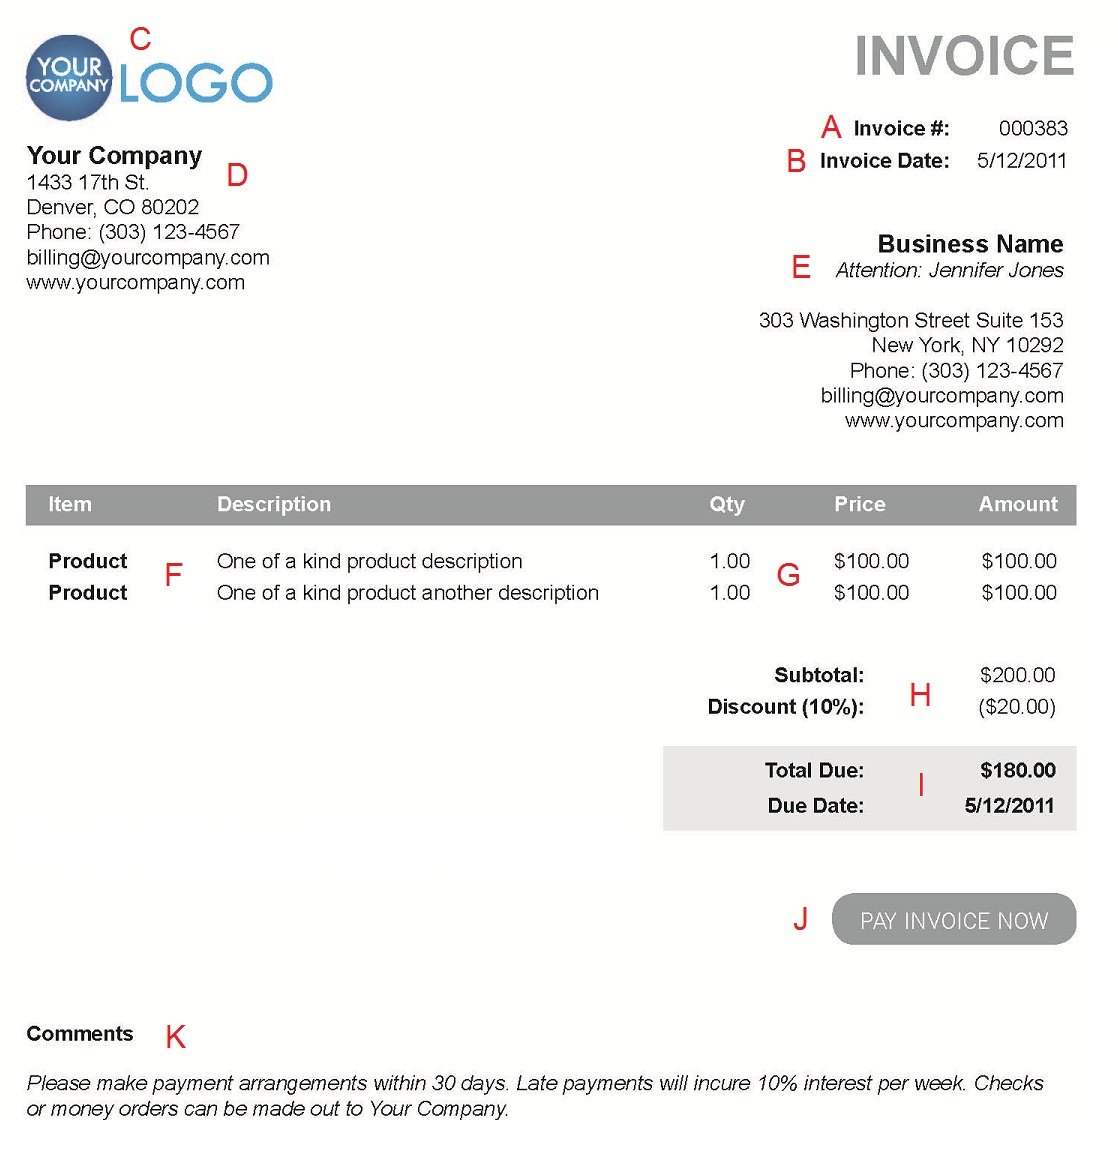 Hucareus  Marvelous The  Different Sections Of An Electronic Payment Invoice With Glamorous A  With Divine Invoices Quickbooks Also Blank Invoice Form Pdf In Addition True Car Invoice And How To Draft An Invoice As Well As Accounts Payable Invoices Additionally Invoice Generation From Paysimplecom With Hucareus  Glamorous The  Different Sections Of An Electronic Payment Invoice With Divine A  And Marvelous Invoices Quickbooks Also Blank Invoice Form Pdf In Addition True Car Invoice From Paysimplecom